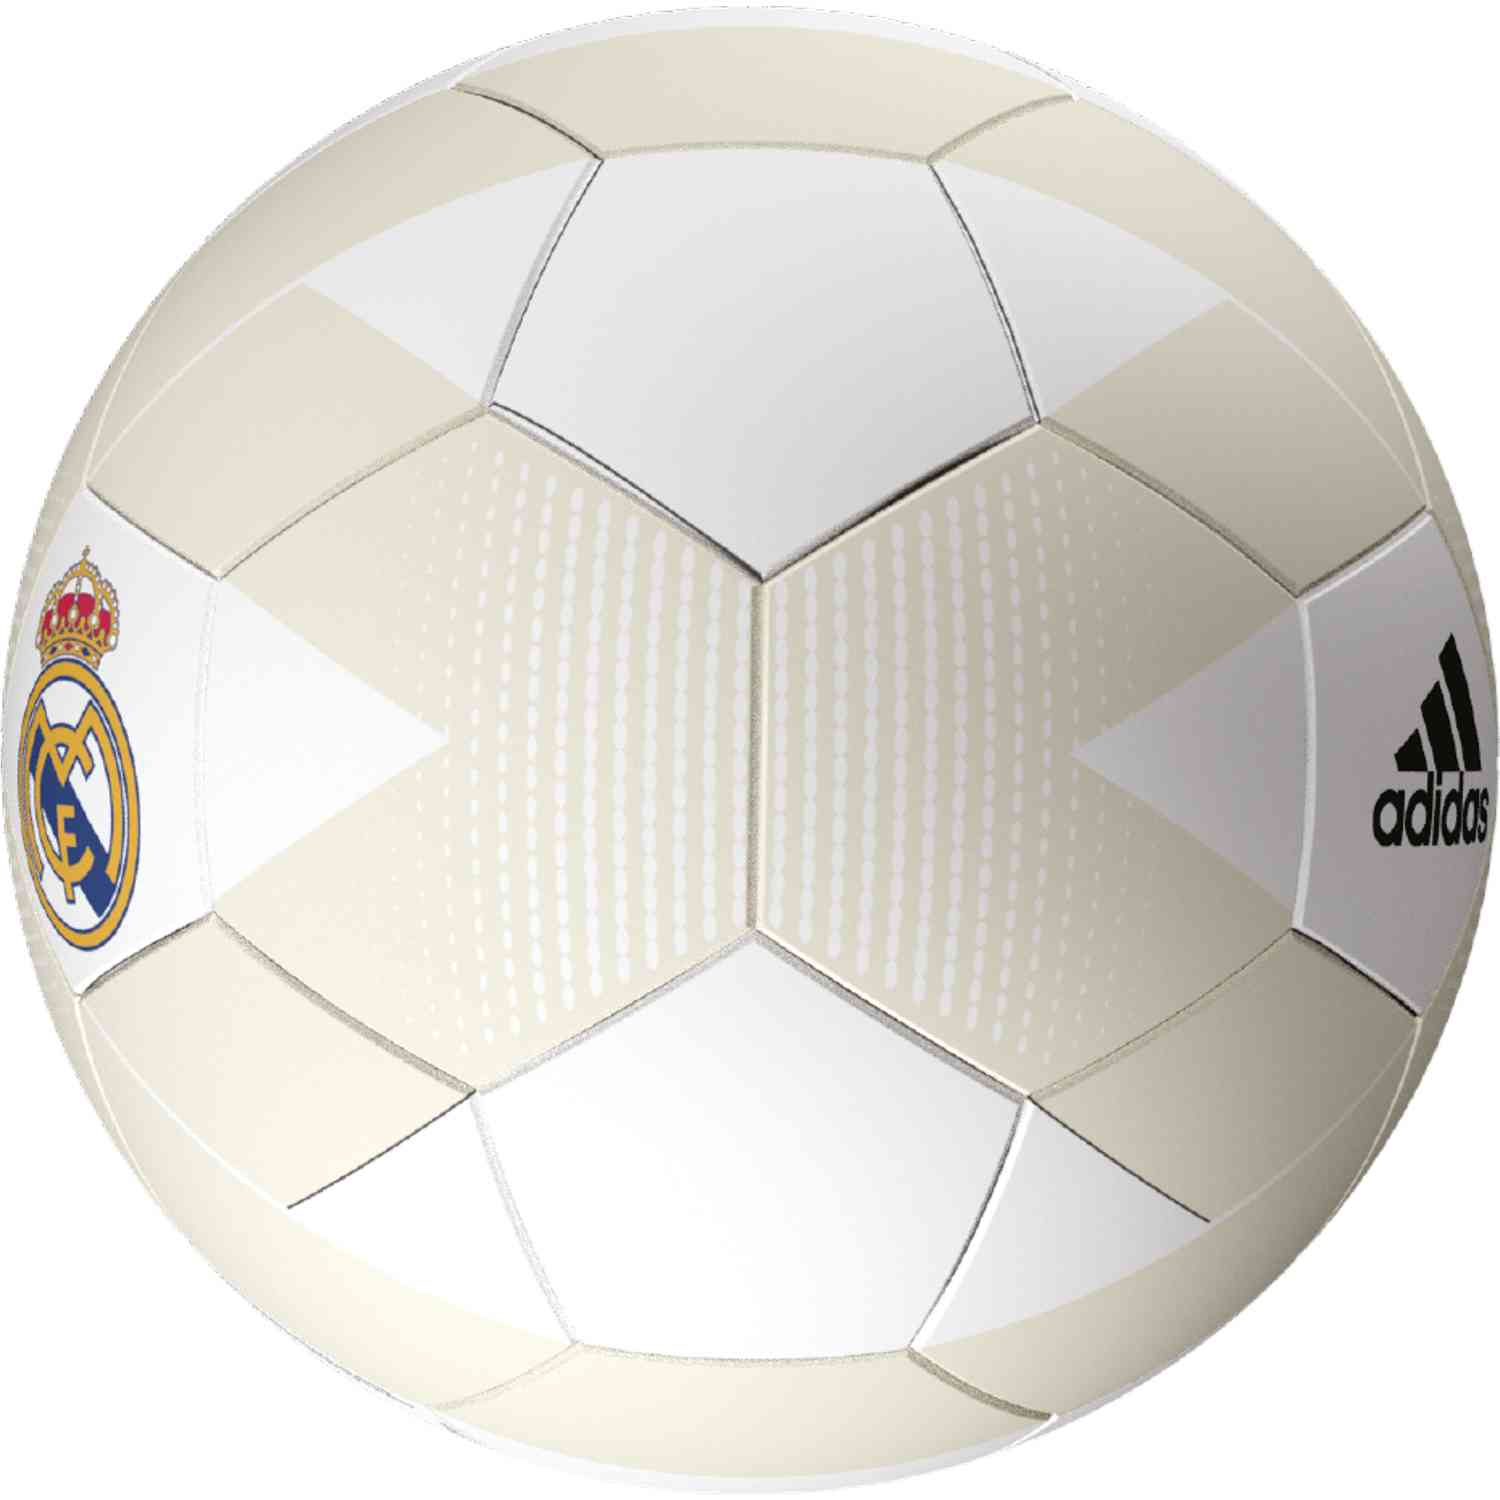 ce17b00d7 adidas Real Madrid Soccer Ball - Cream White Grey One - SoccerPro